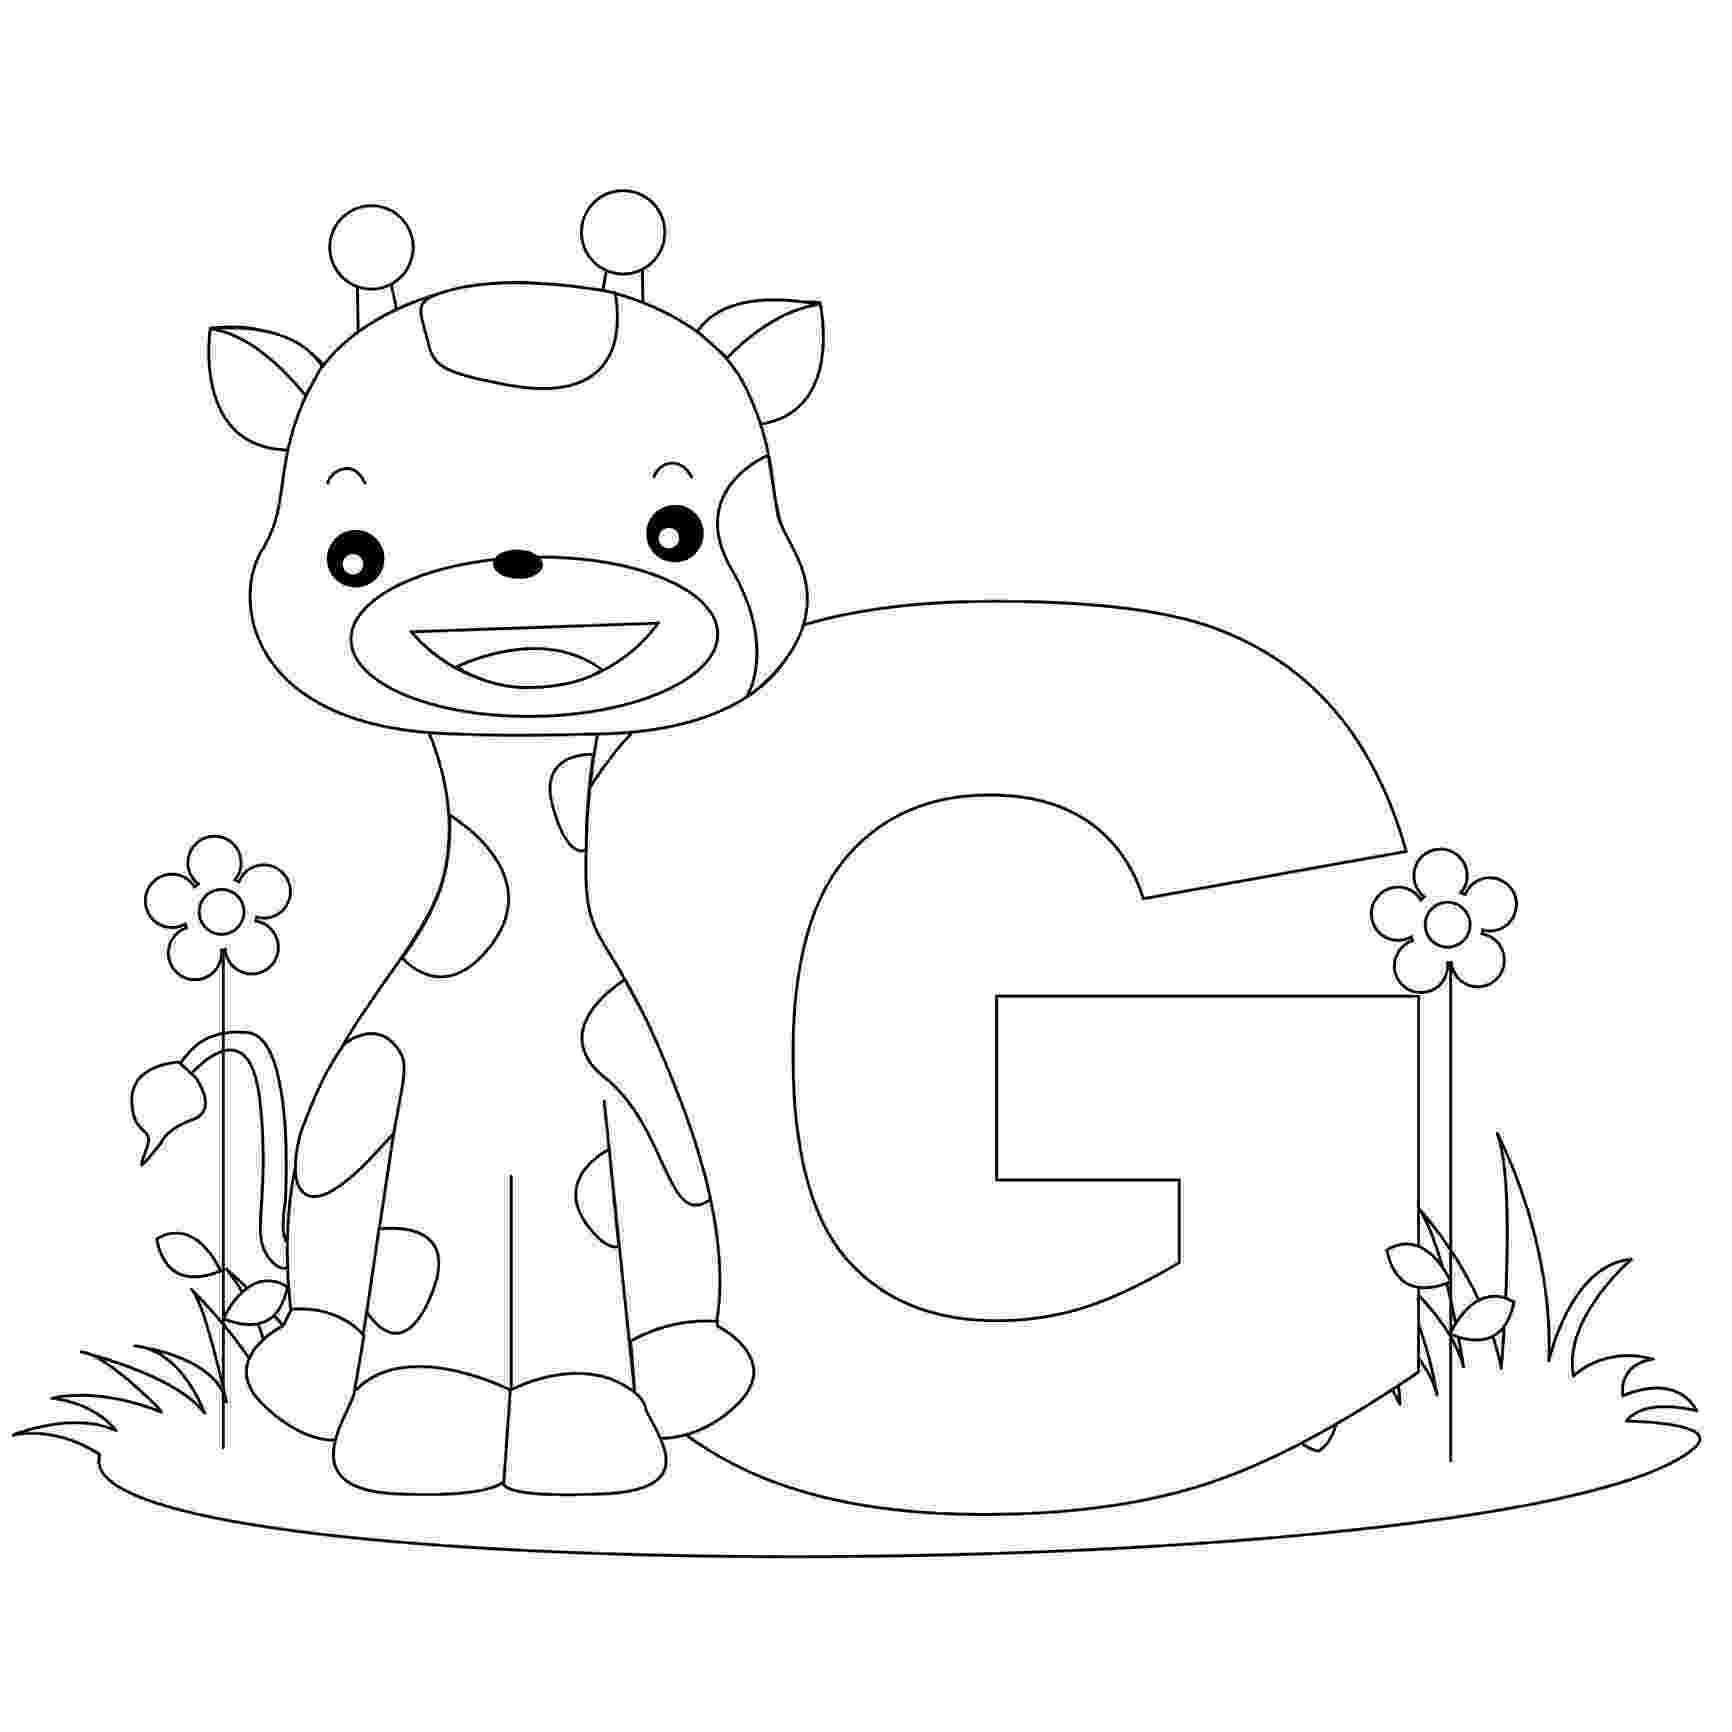 coloring pages of letters free printable alphabet coloring pages for kids best of coloring pages letters